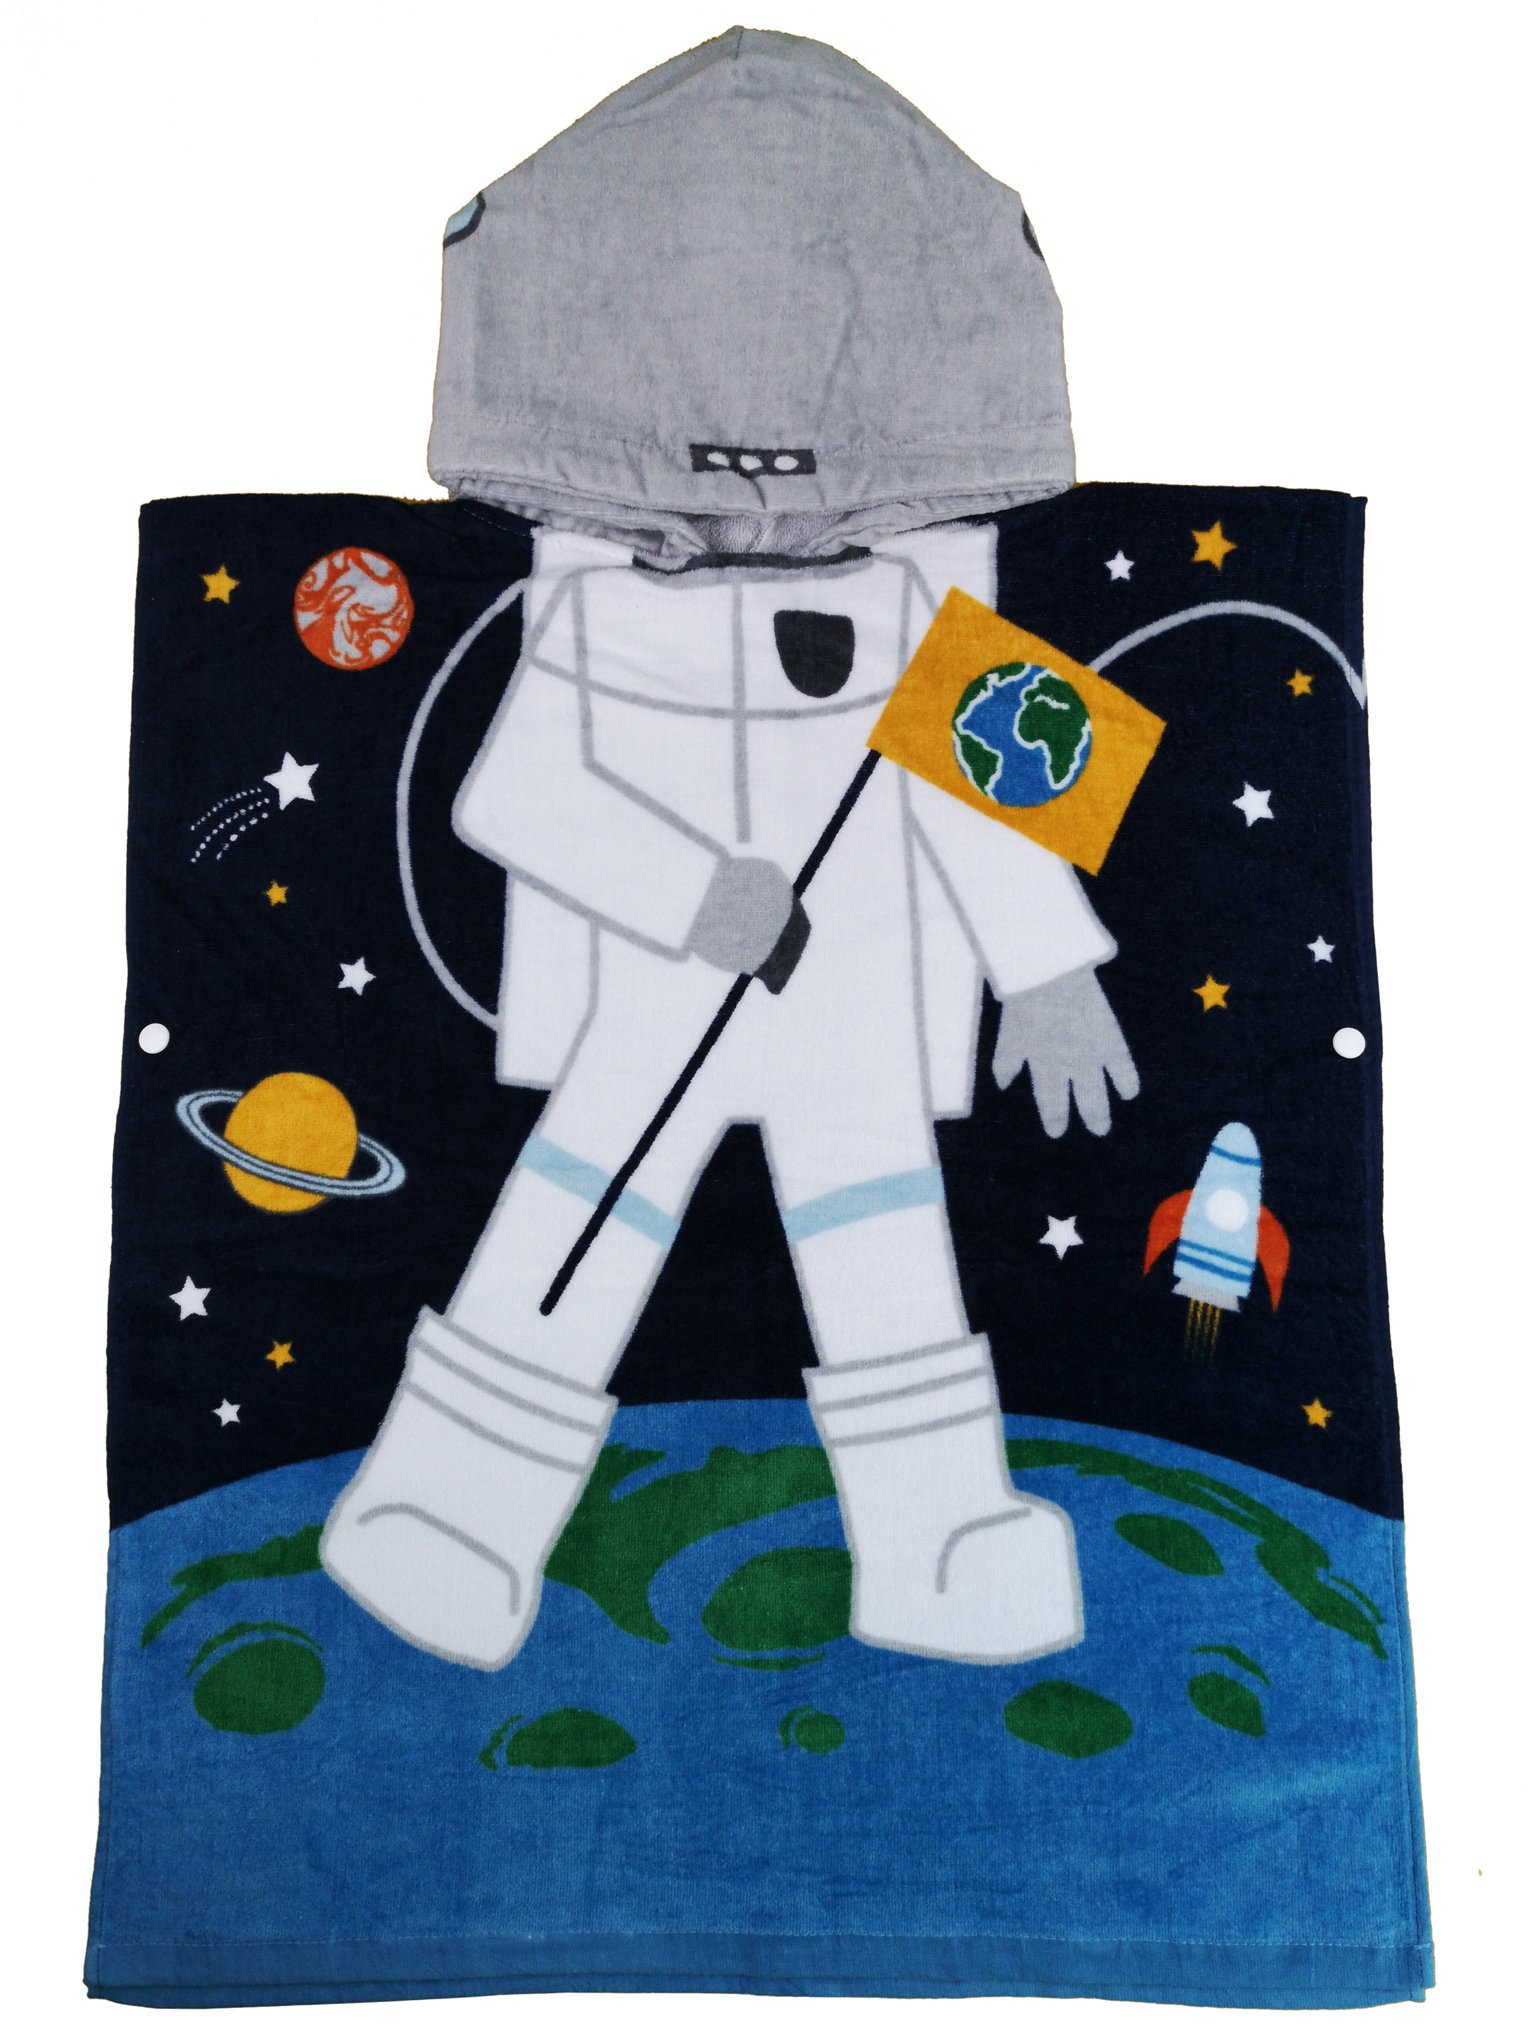 Athaelay Cotton Beach Towel For Age 2-7 Years Boy Toddlers and Children, Multi-use for Bath/Shower/Pool/Swim, Kids Hooded Poncho Bathrobe, Astronaut Theme